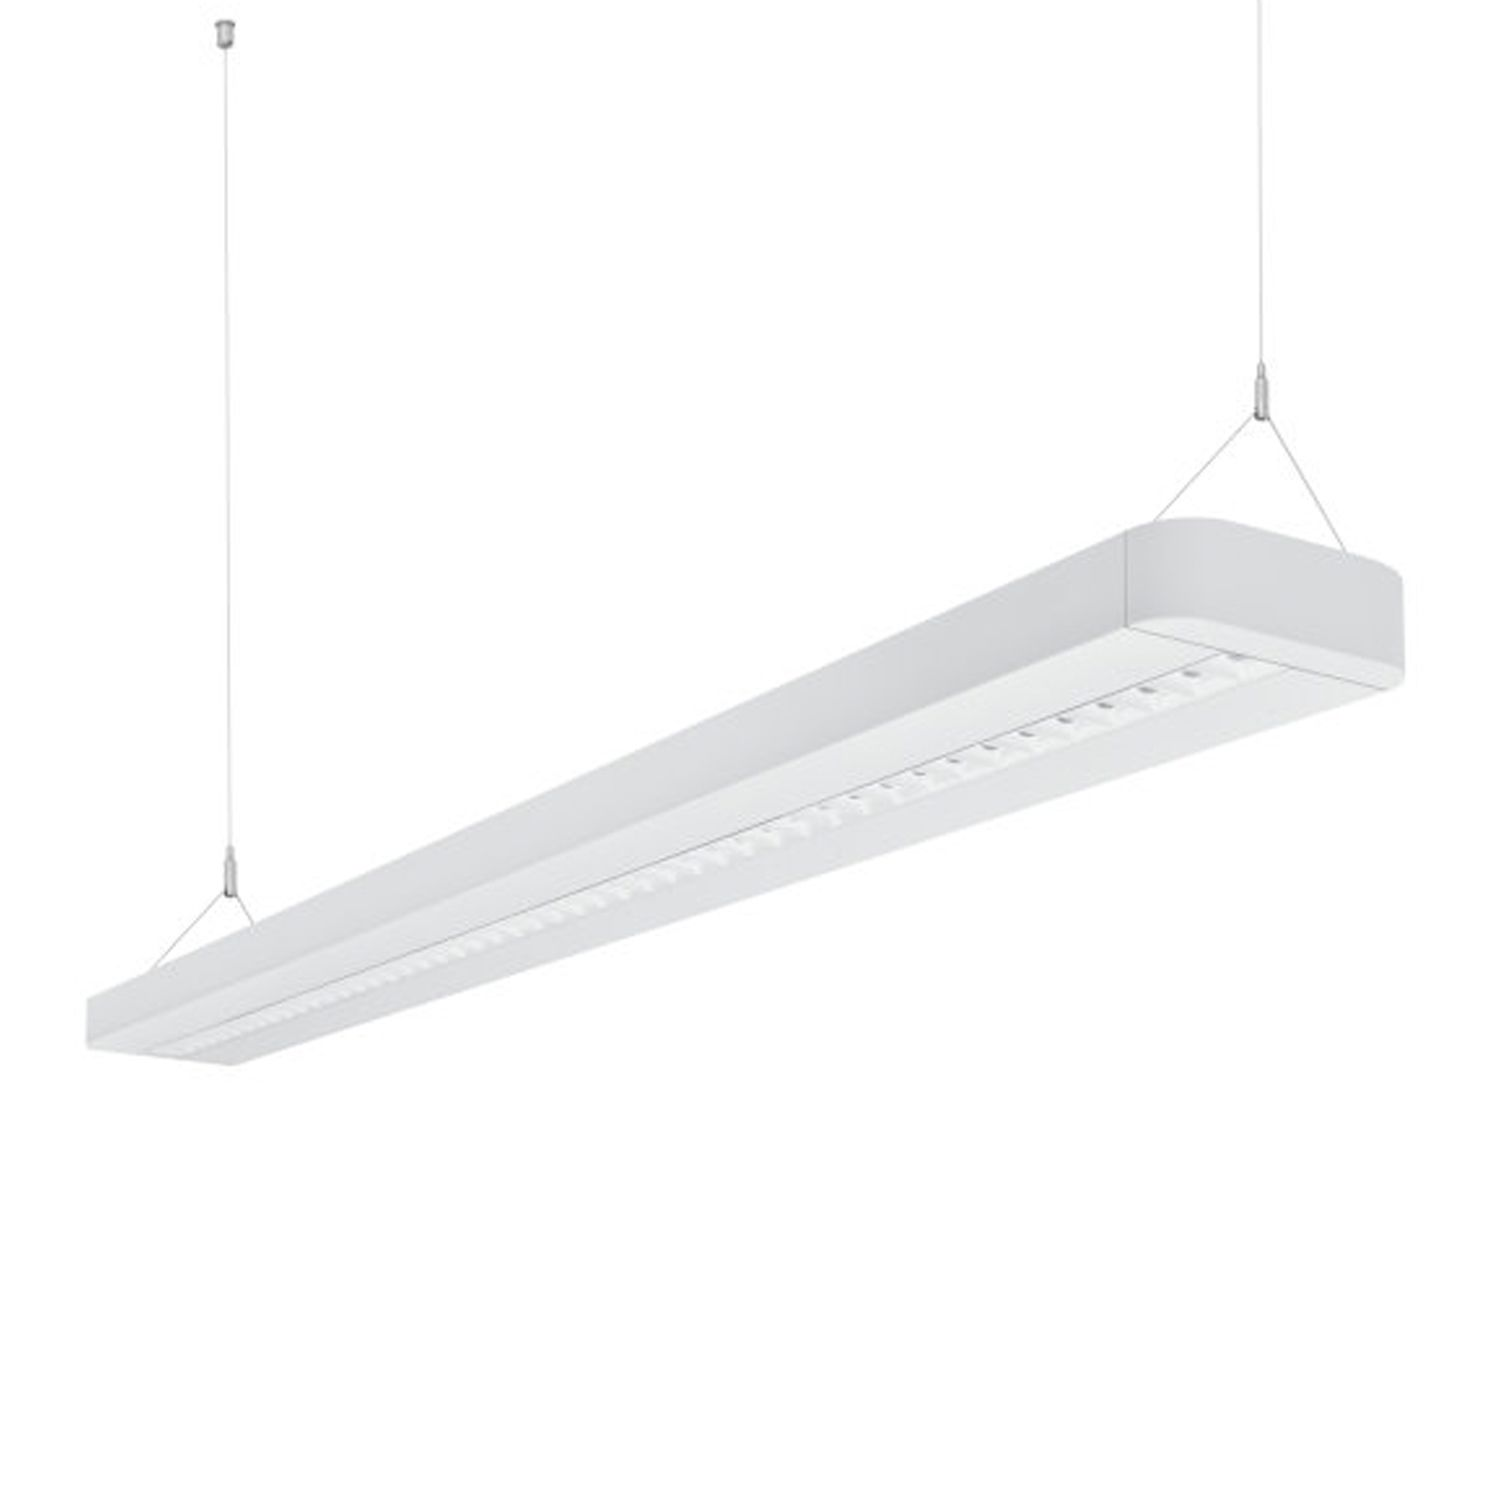 Ledvance LINEAR IndiviLED DIRECT 35W 120cm 4000K  | Dali Dimmable